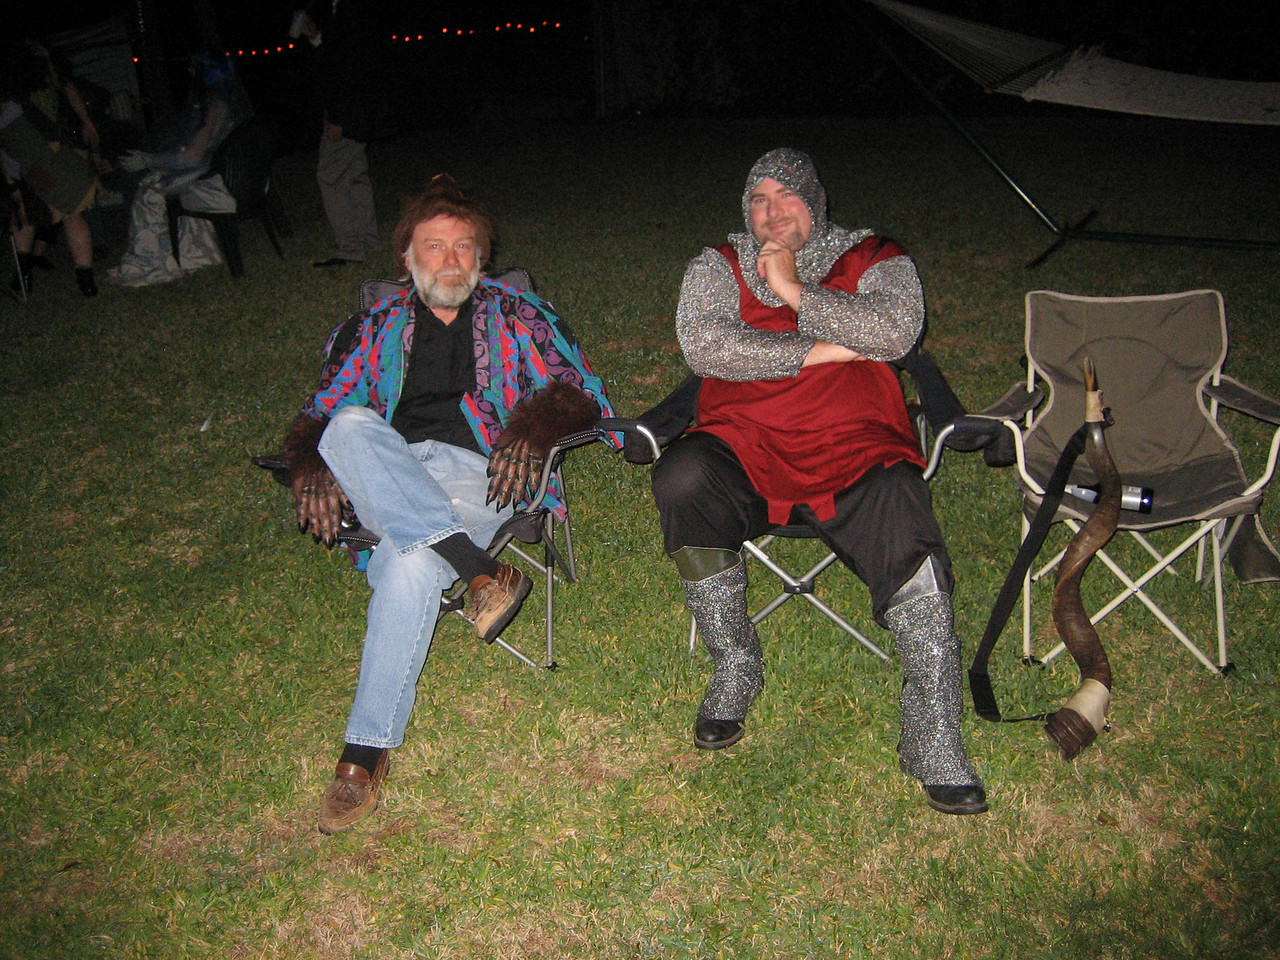 wolf man and knight takes a load off